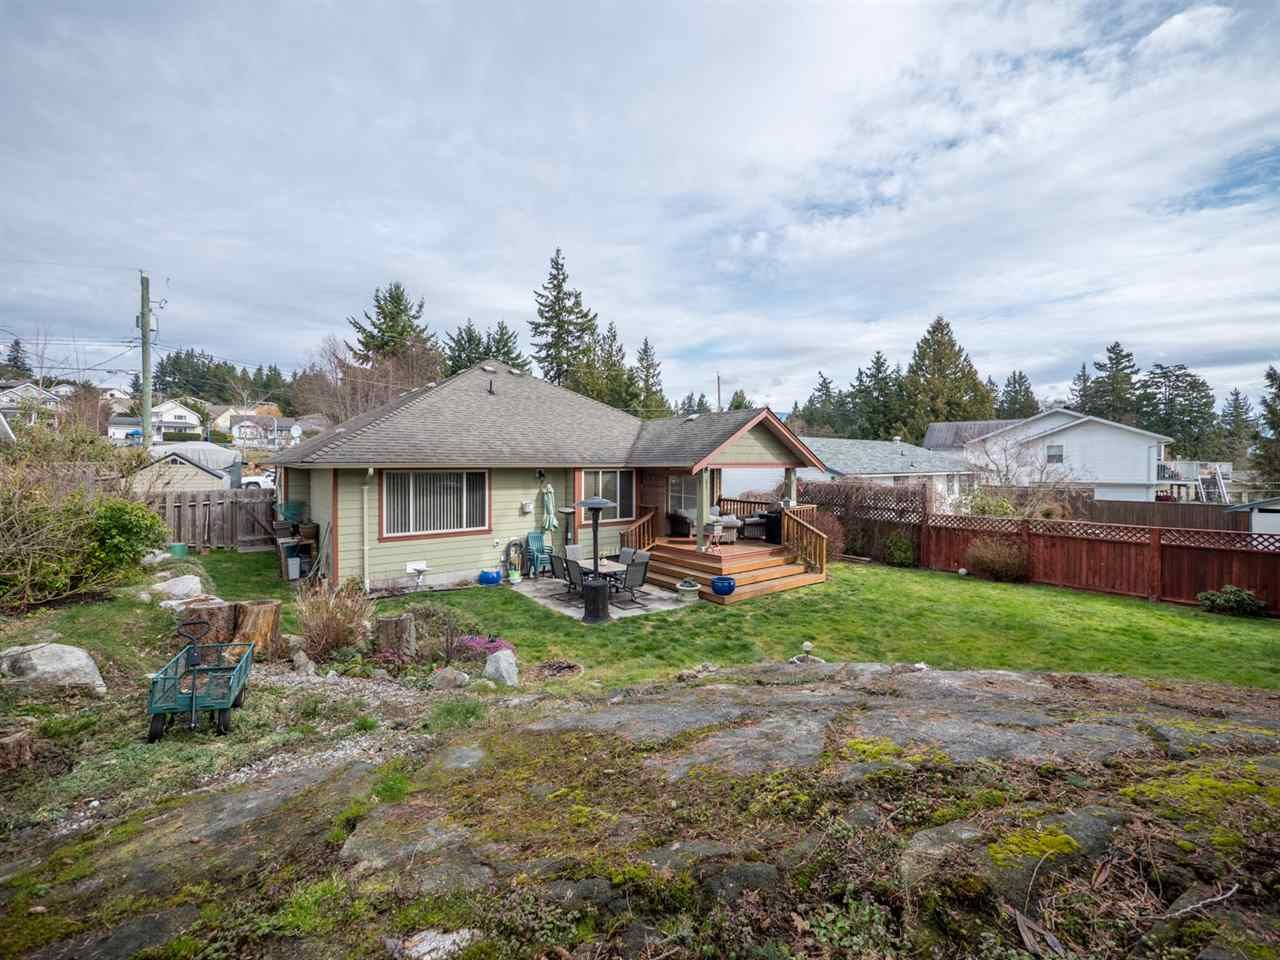 Photo 20: Photos: 6335 PICADILLY Place in Sechelt: Sechelt District House for sale (Sunshine Coast)  : MLS®# R2248834